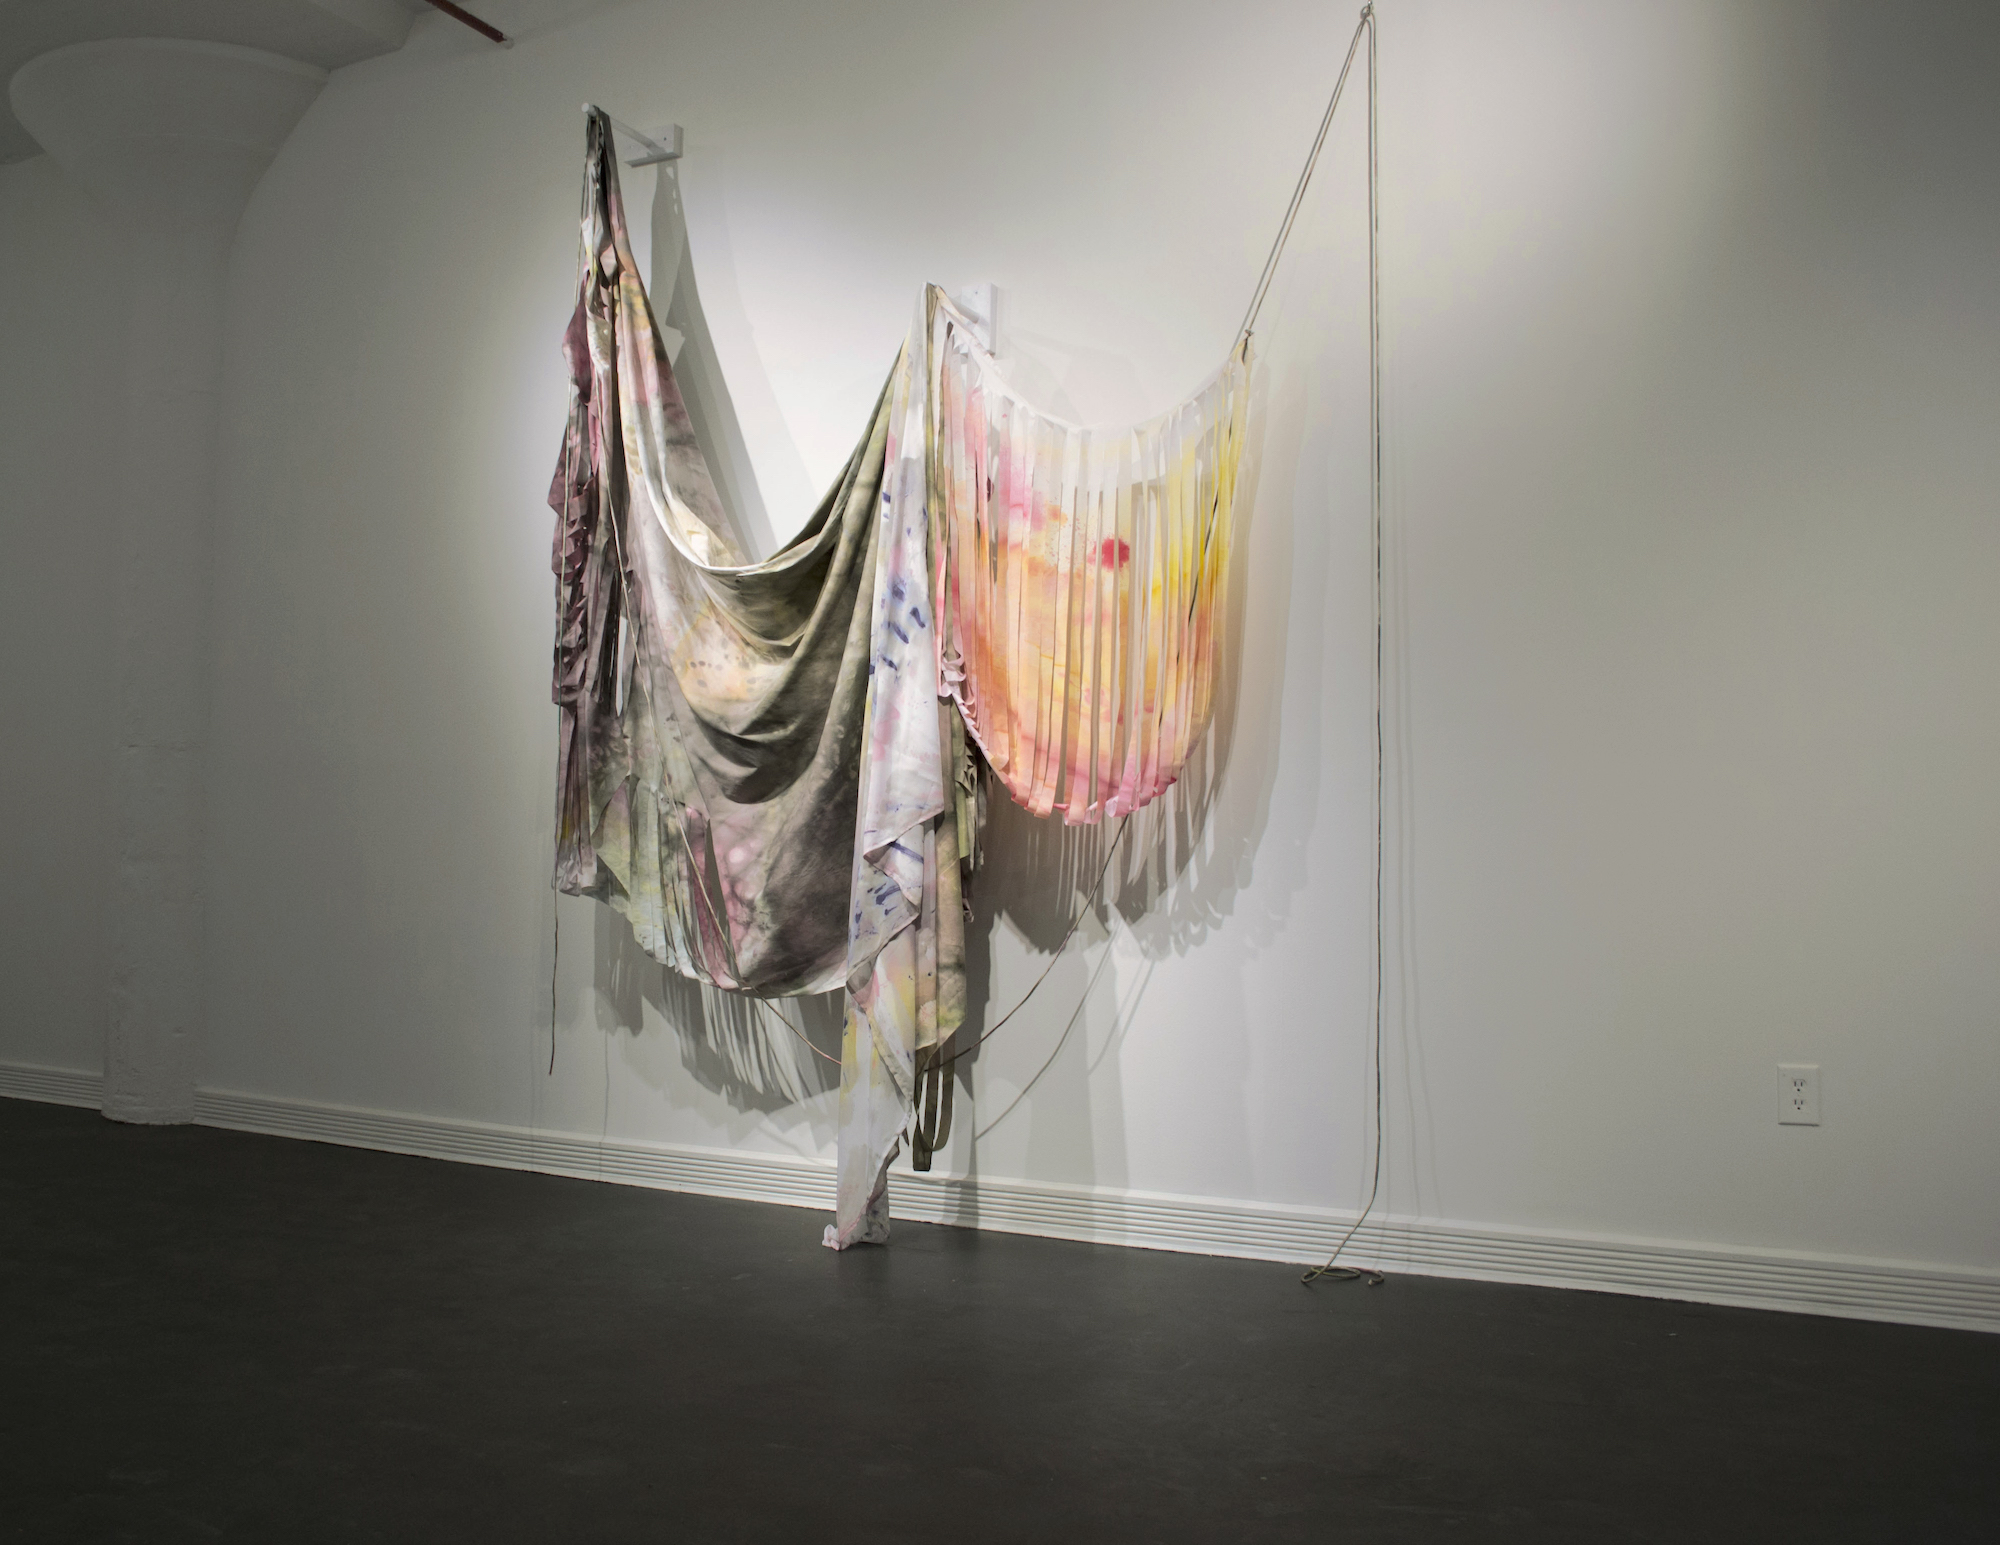 """Perceptual studies,  synthetic and natural dye on cotton, linen, and silk, 6' x 5' x 12"""", 2017.  Installation view at Sweet Lorraine Gallery, Brooklyn NYC."""